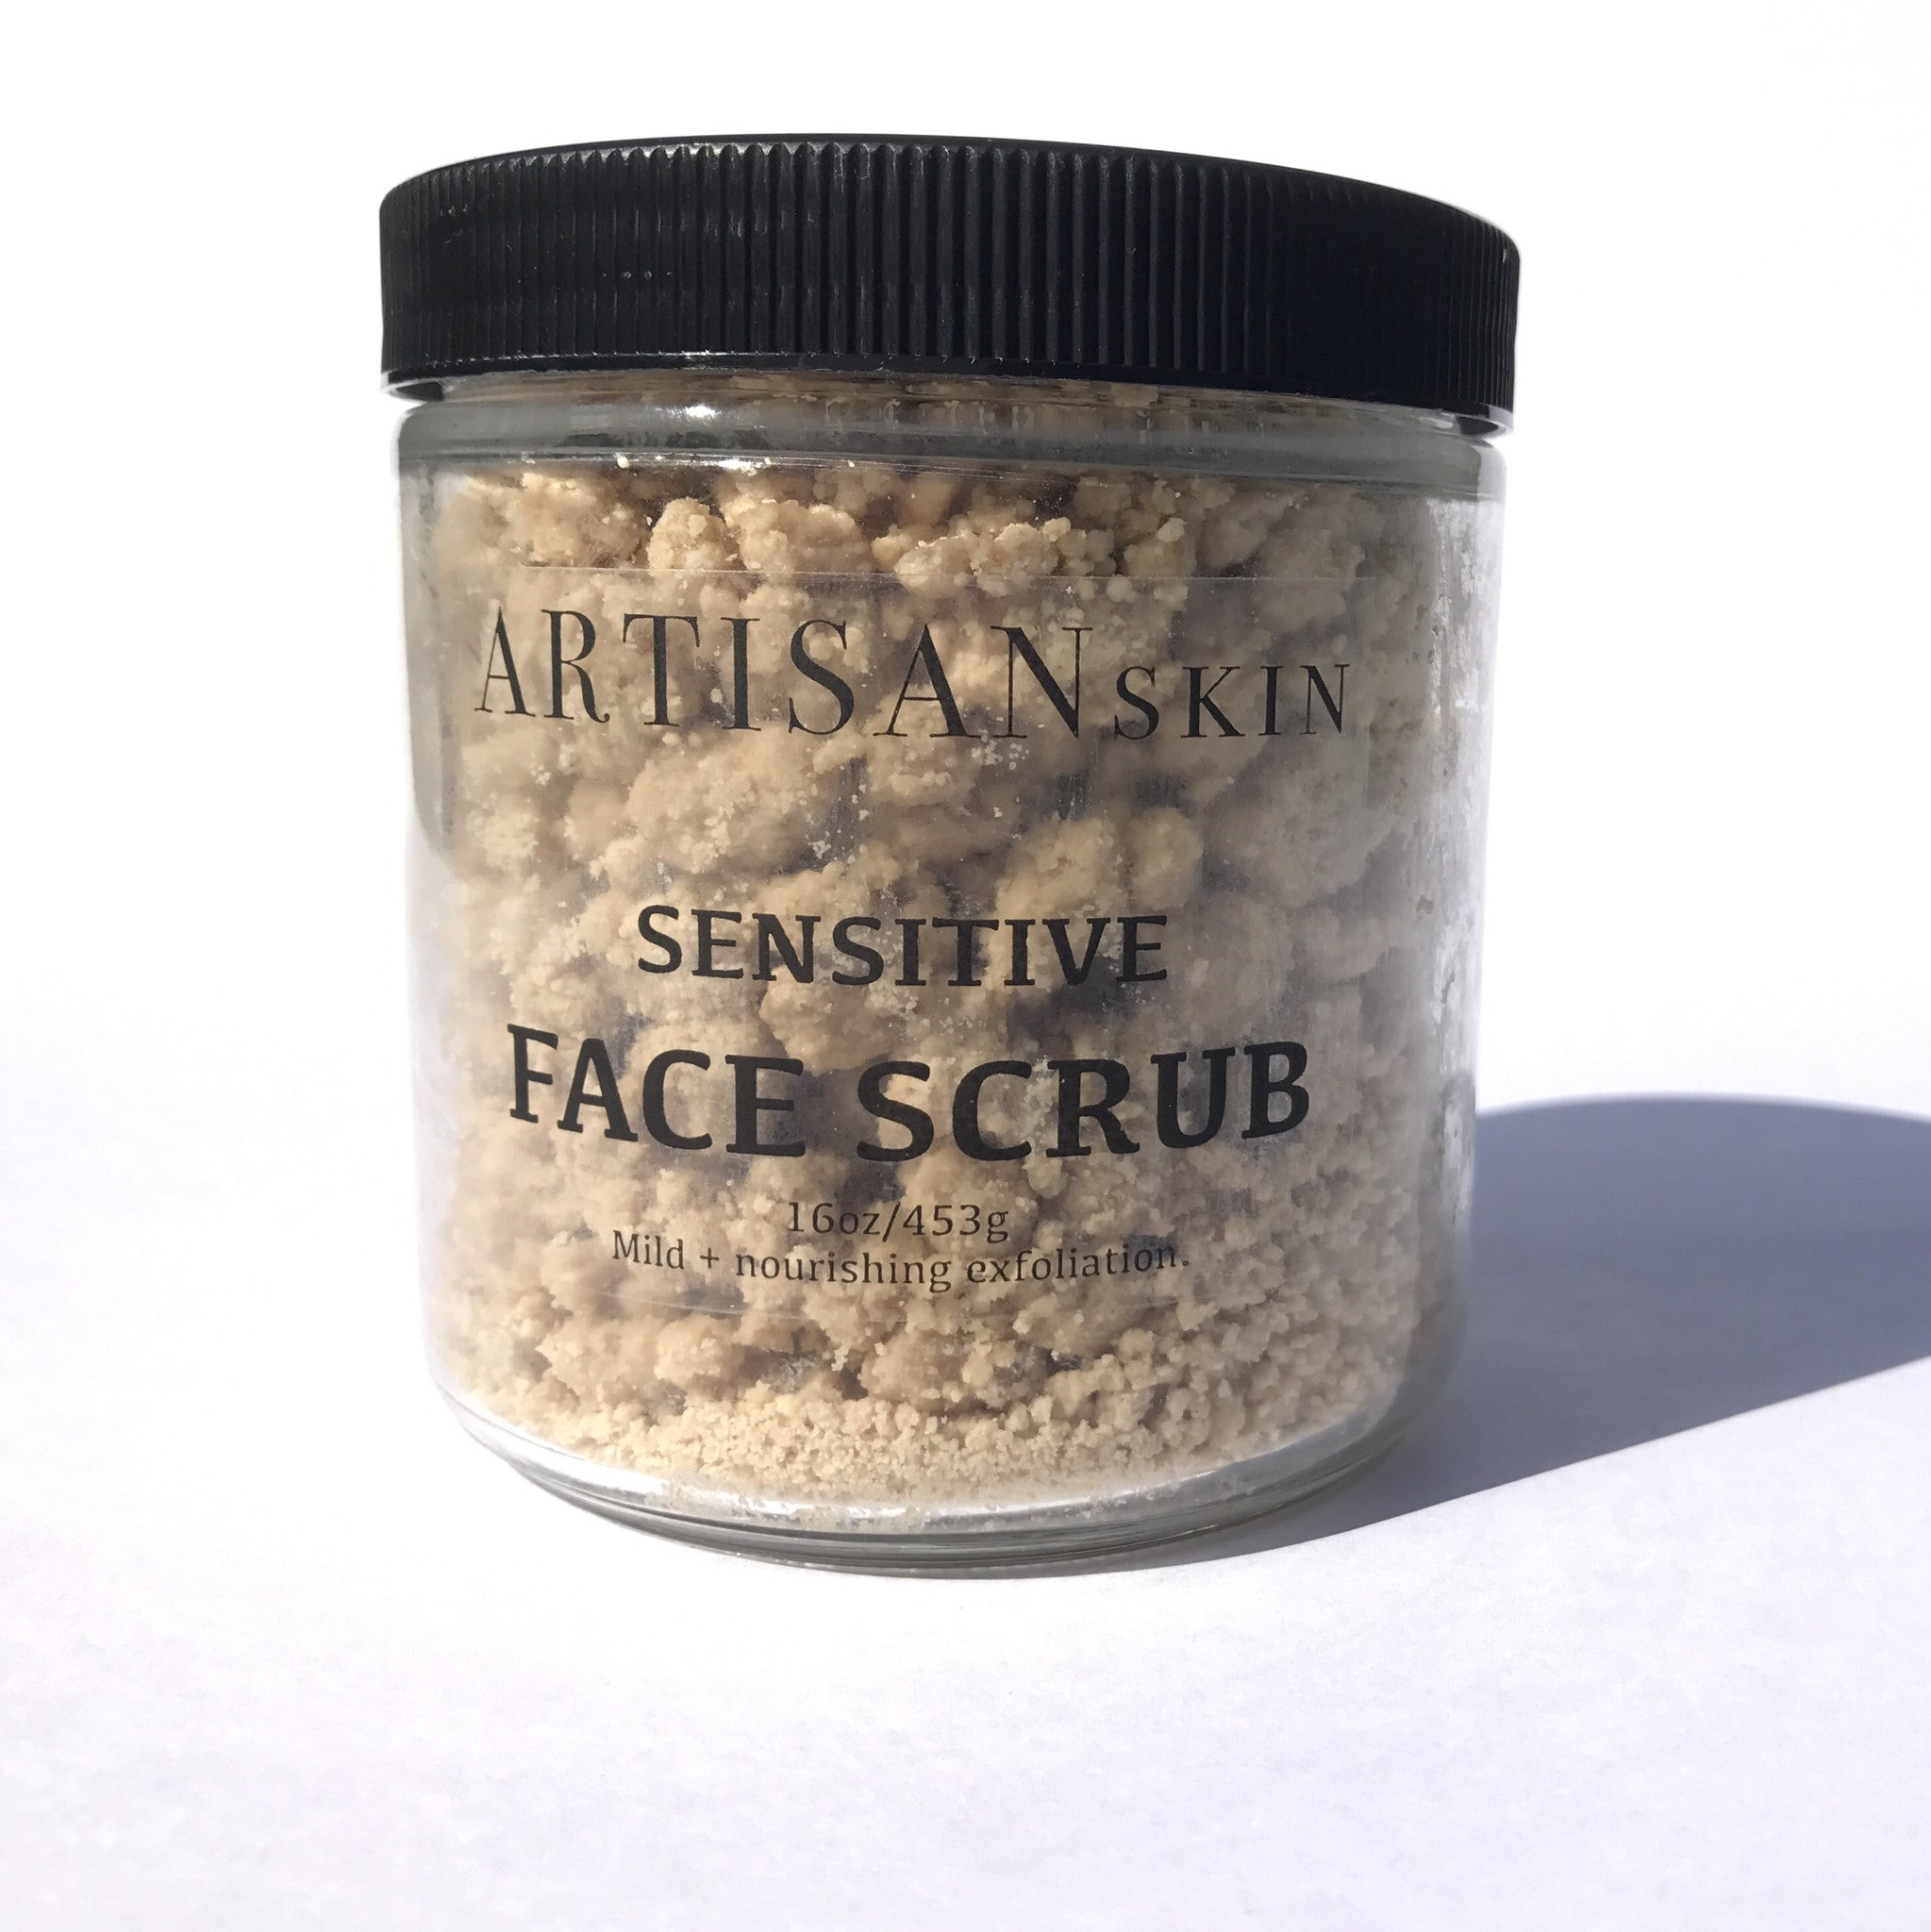 Sensitive Face Scrub